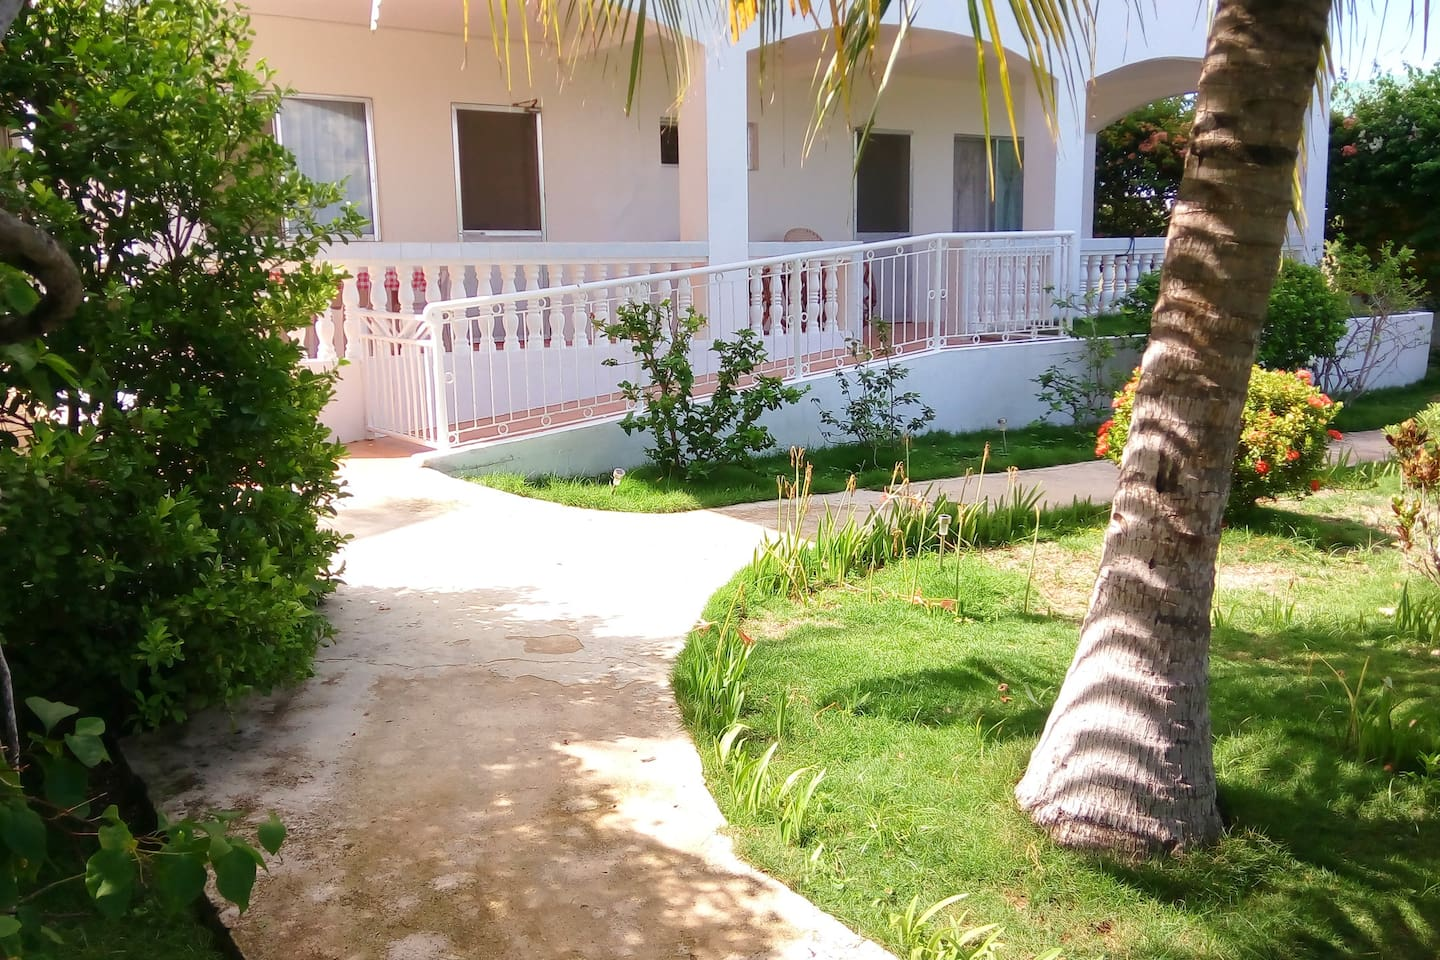 View from the private entrance towards the apartment. The ramp leading up to the terrace clearly visible. Calamansi (citrus fruit) tree just to the left. Coconut tree to the right. Cemented wide walk paths.